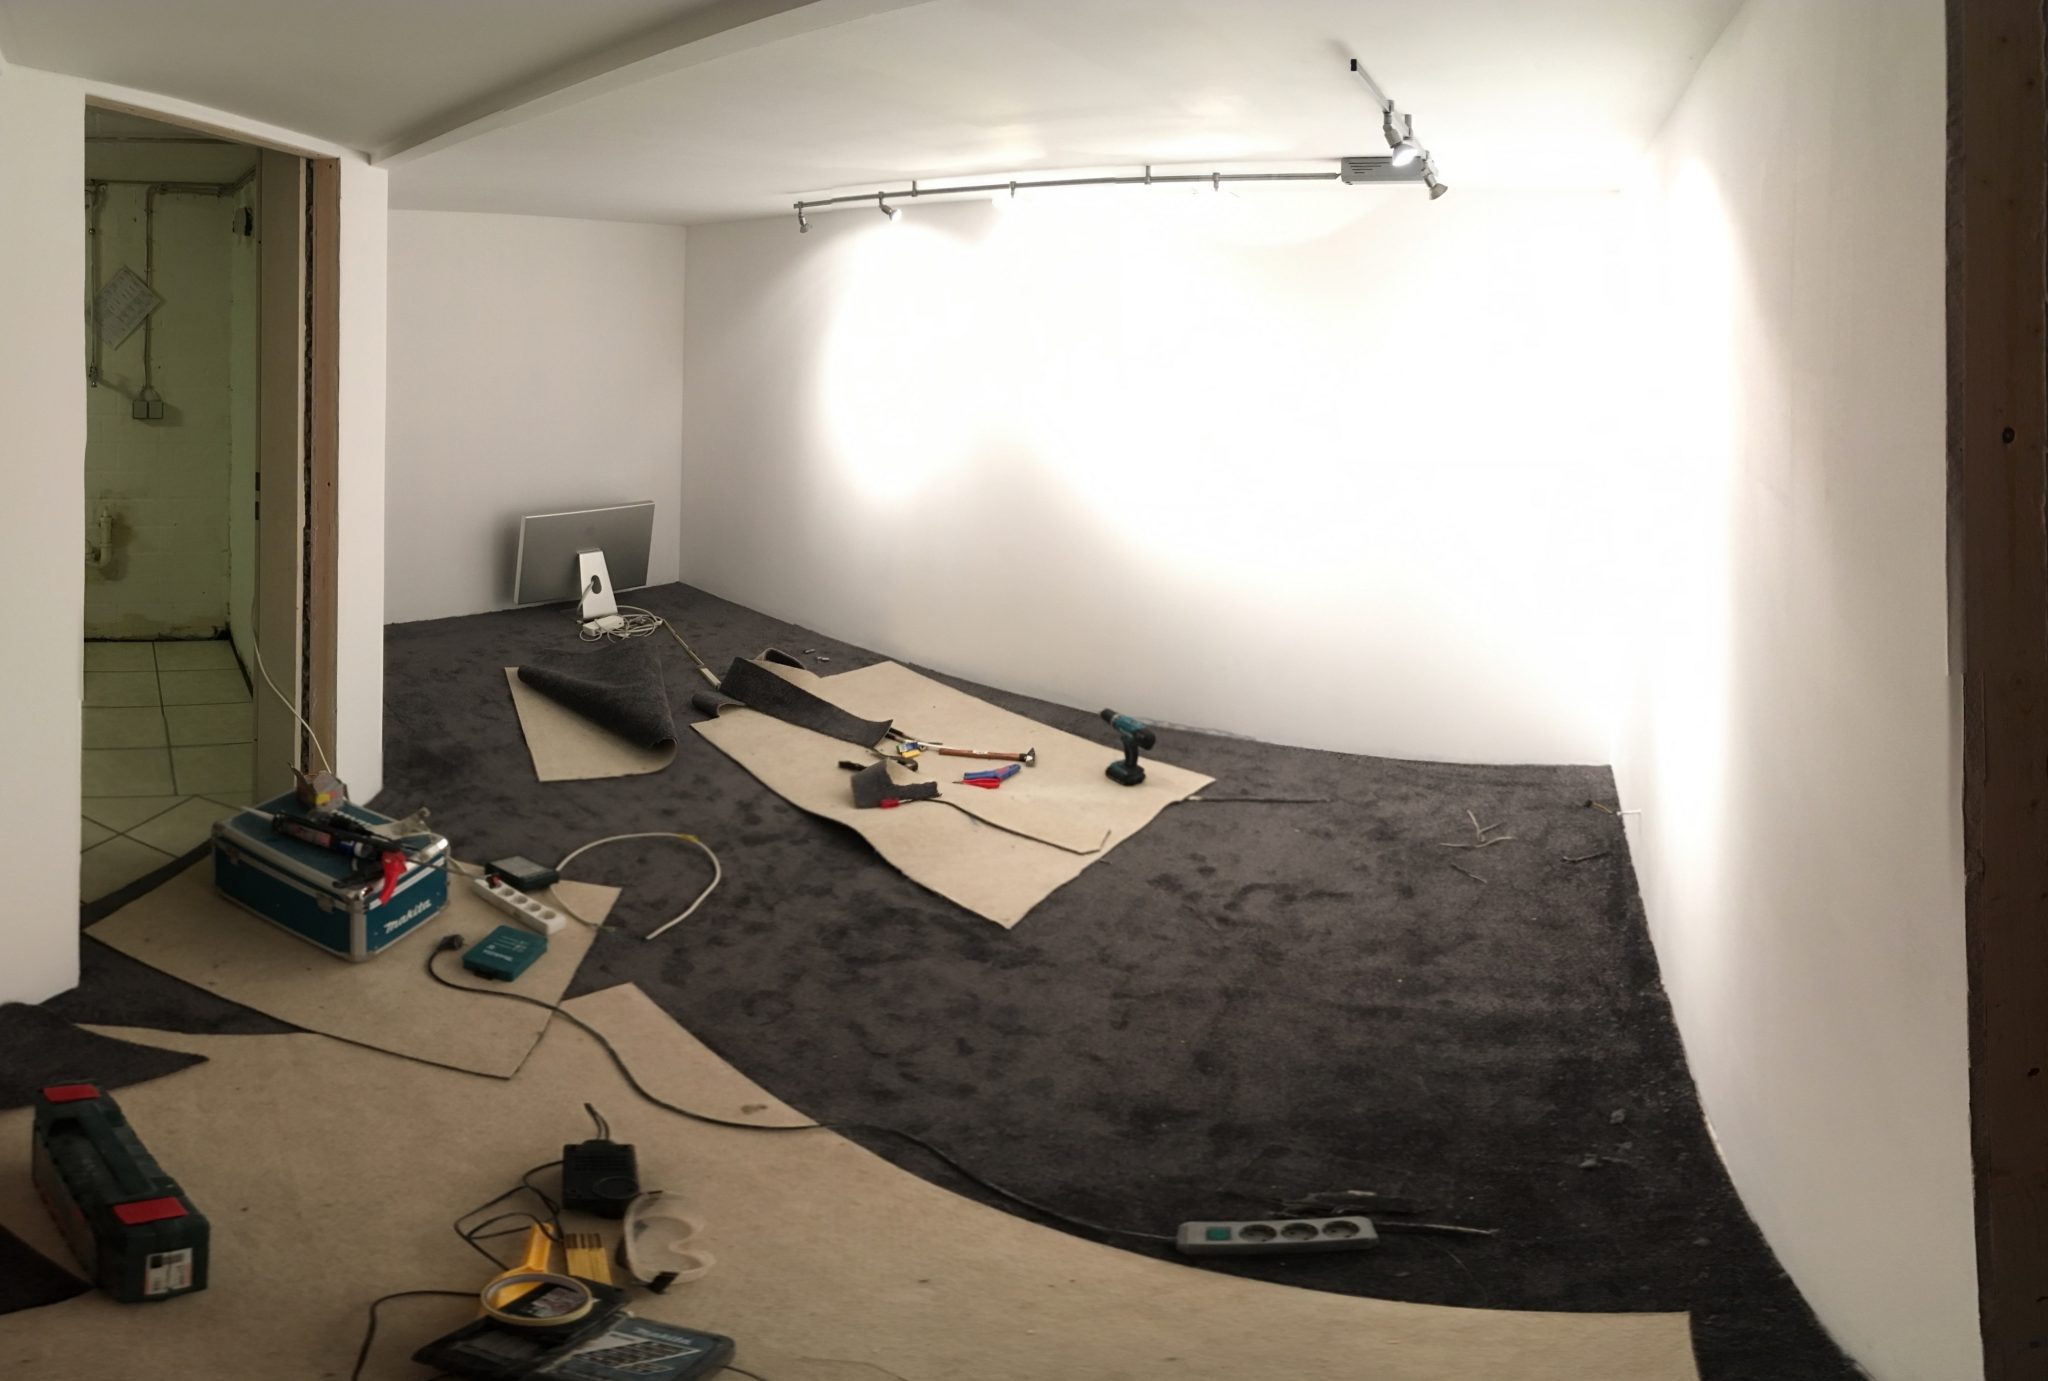 The Walls were painted and the floor got it's carpeting.